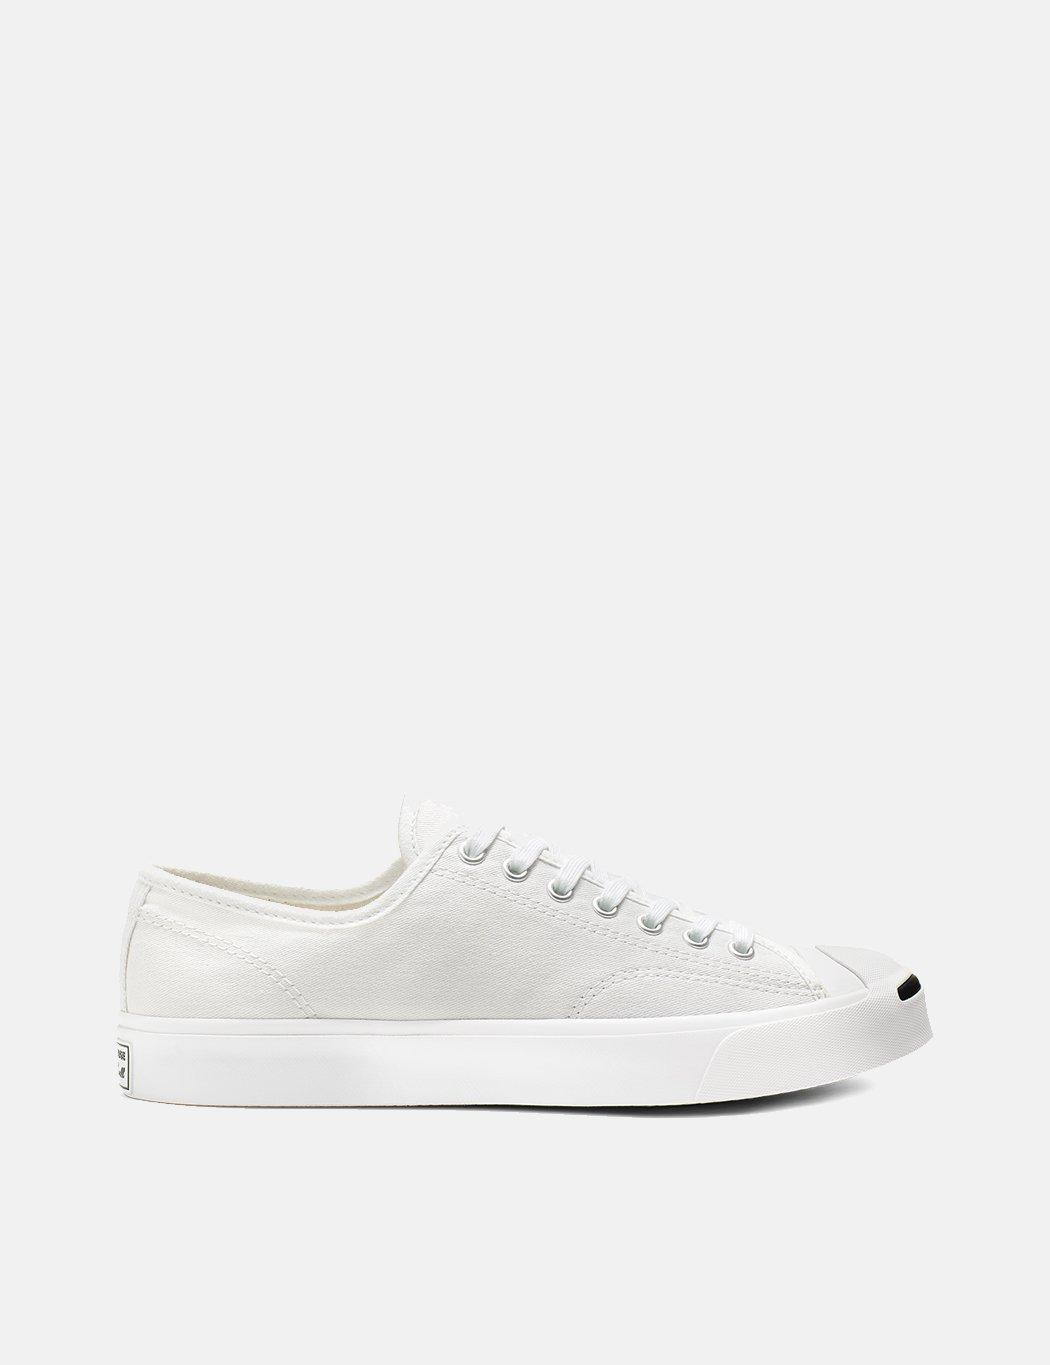 216c7aba9aba Lyst - Converse Jack Purcell 164057c (canvas) in White for Men